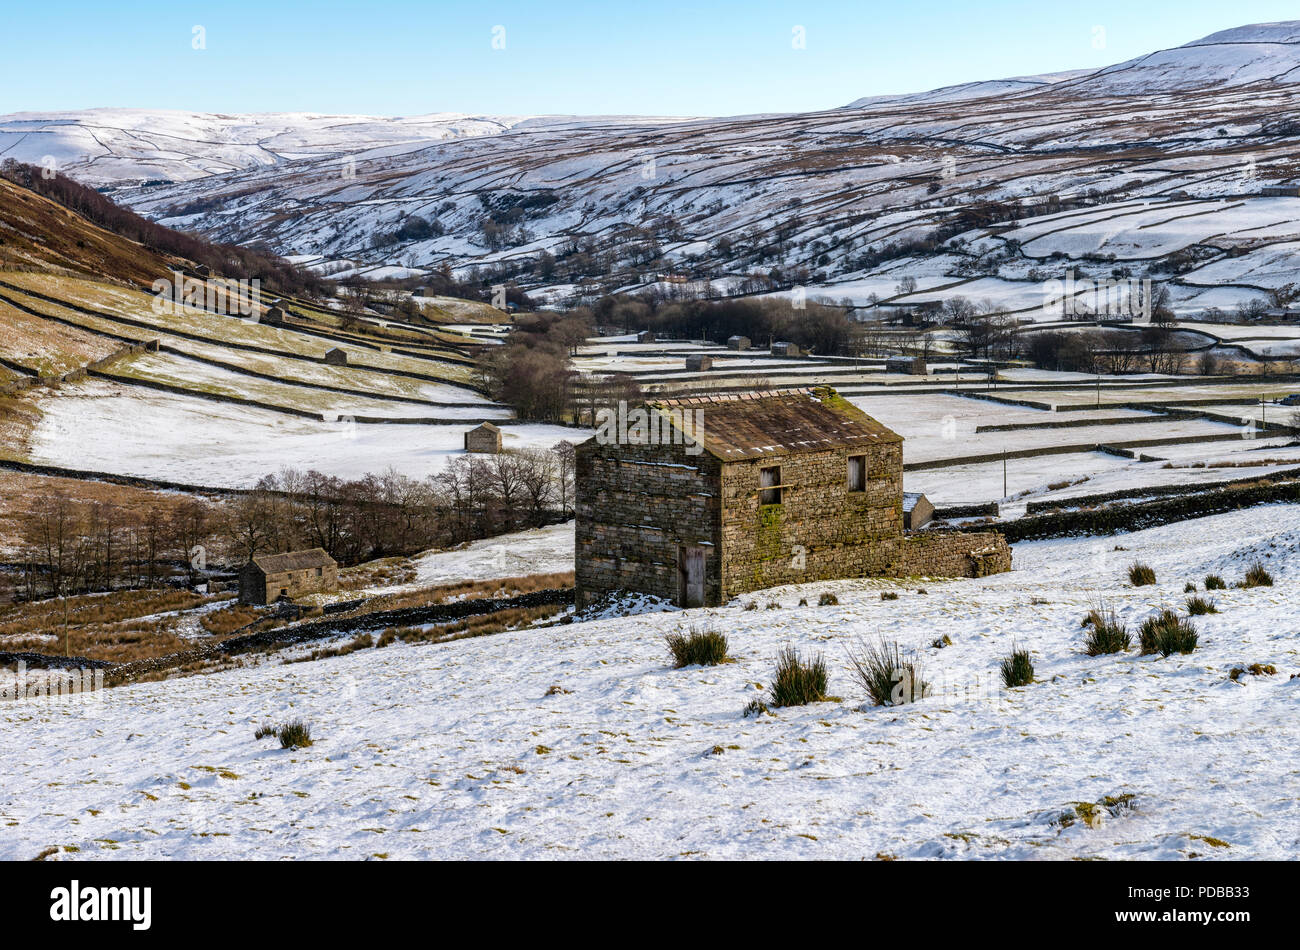 The barns at Thwaite near Muker in Swaledale - Stock Image